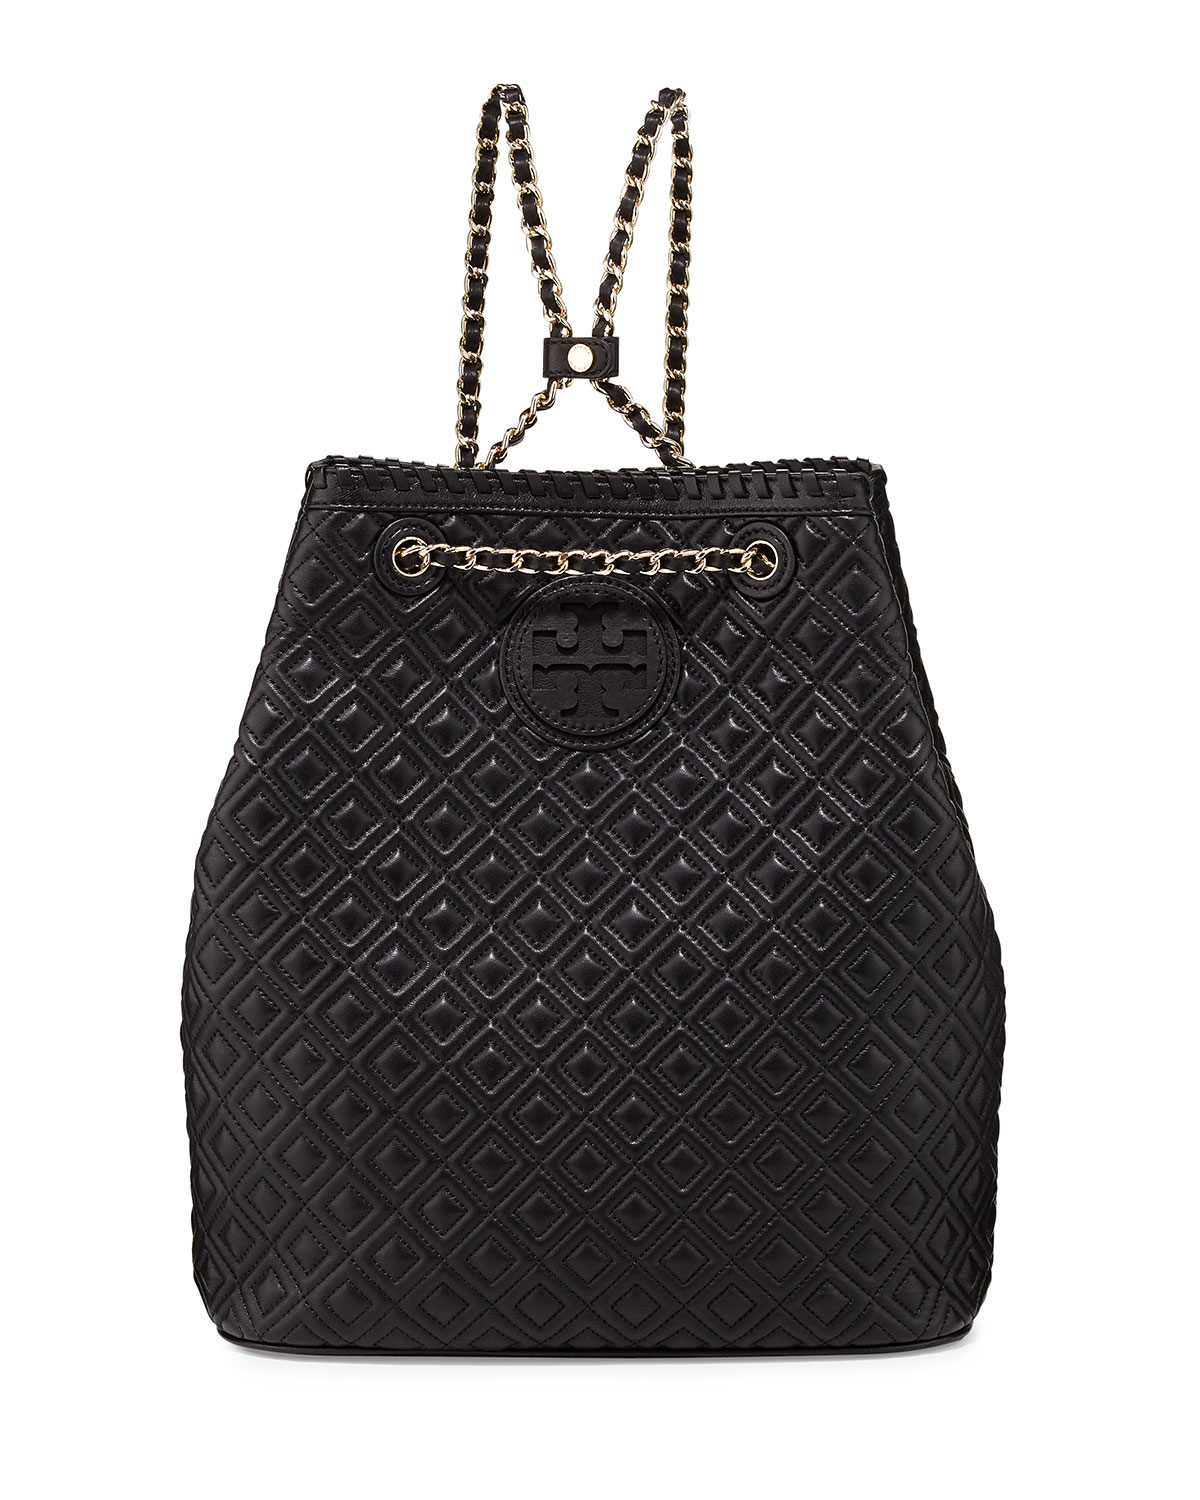 Tory Burch Marion Quilted Leather Backpack In Black Lyst